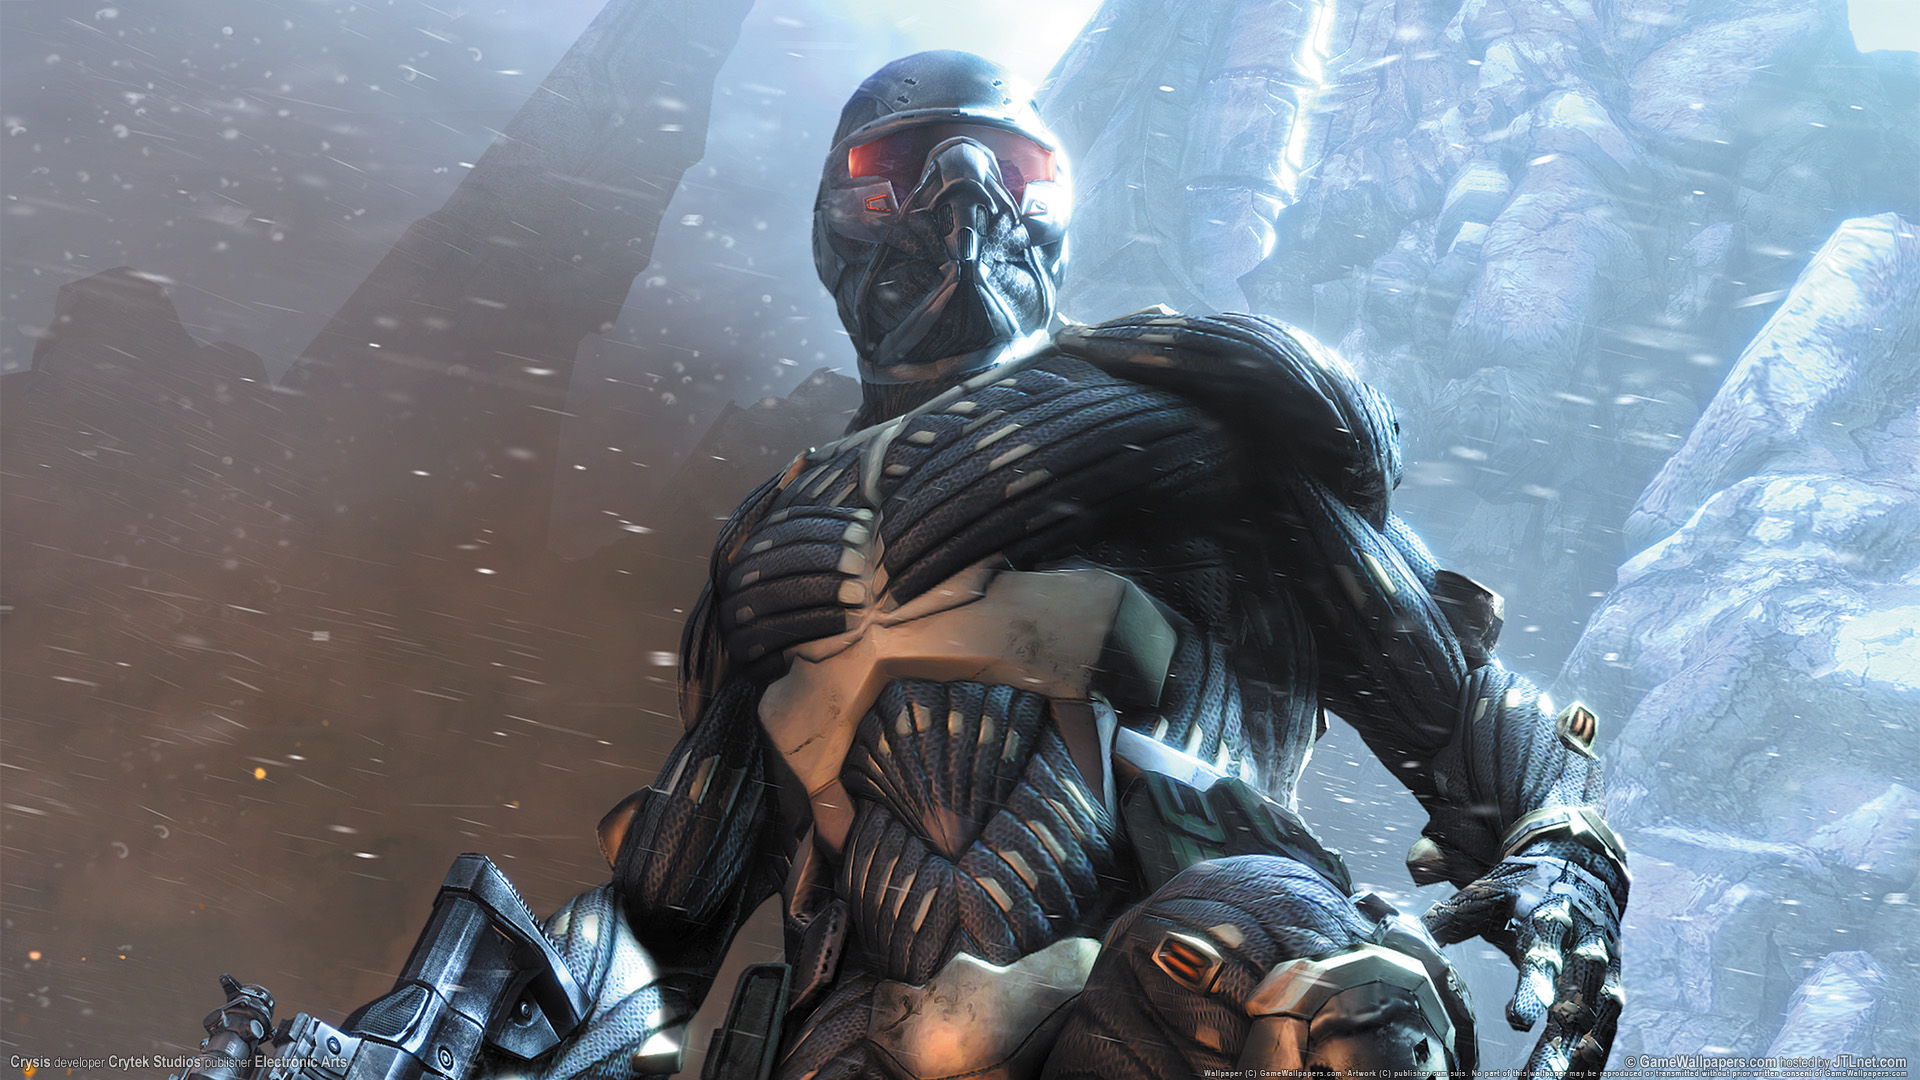 Crysis Wallpaper 1920×1080 Free